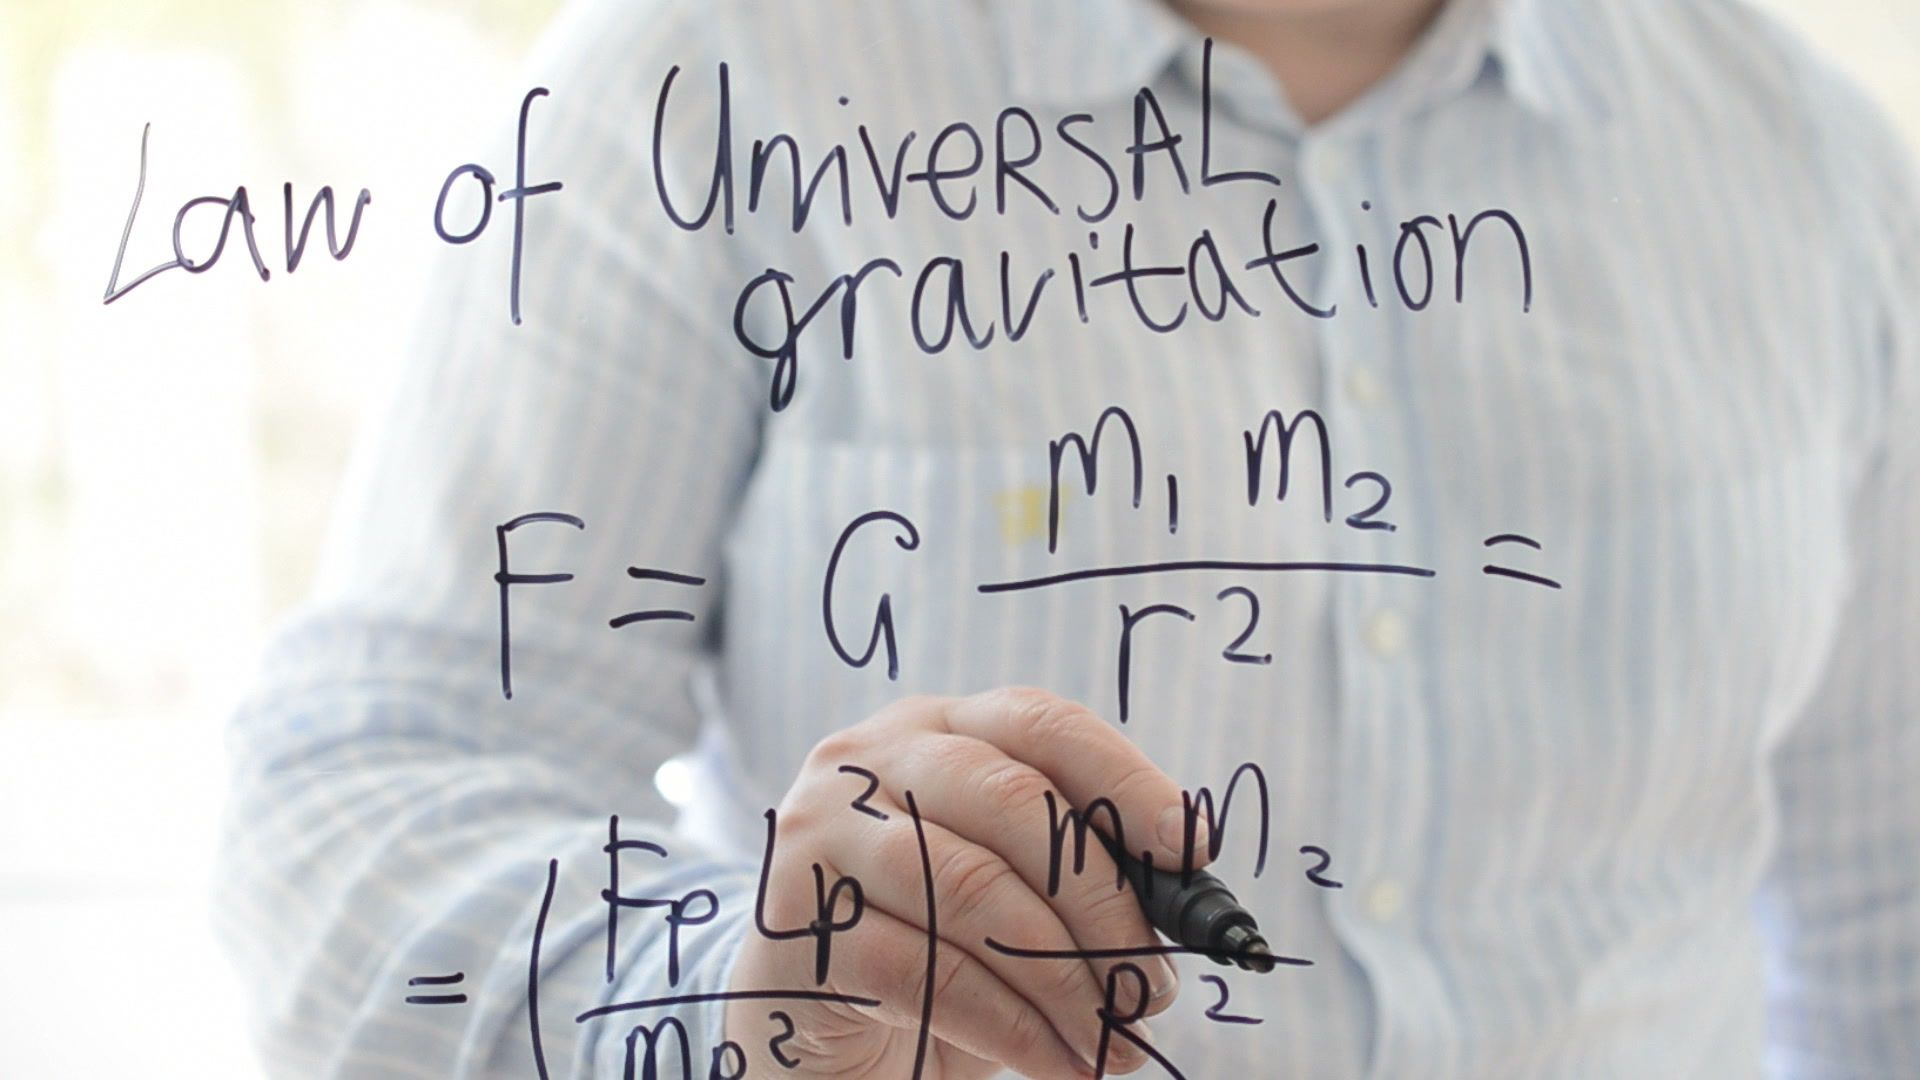 Law Of Universal Gravitation Formula Gravity Law